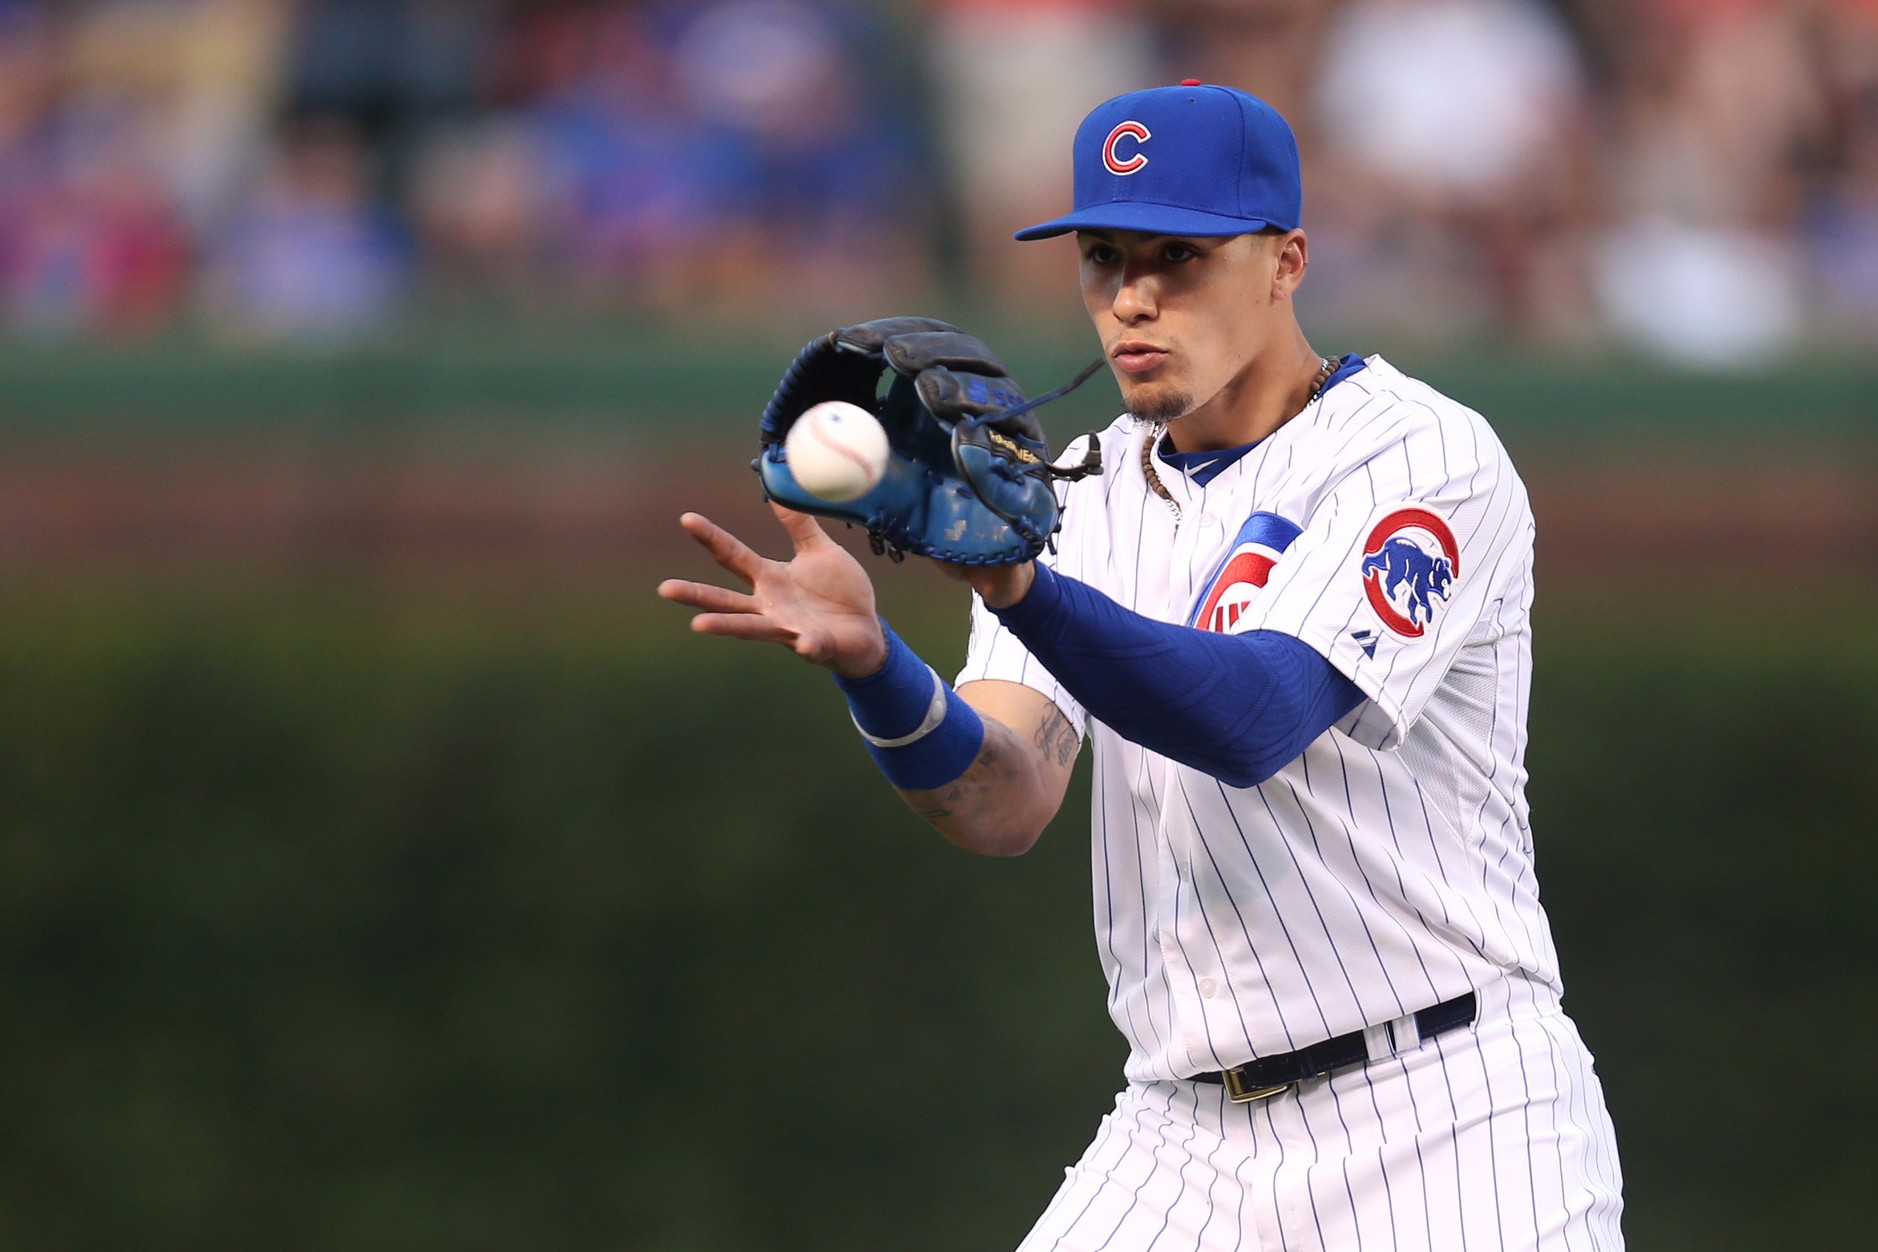 Where Does Javier Baez Fit into the Cubs Equation?